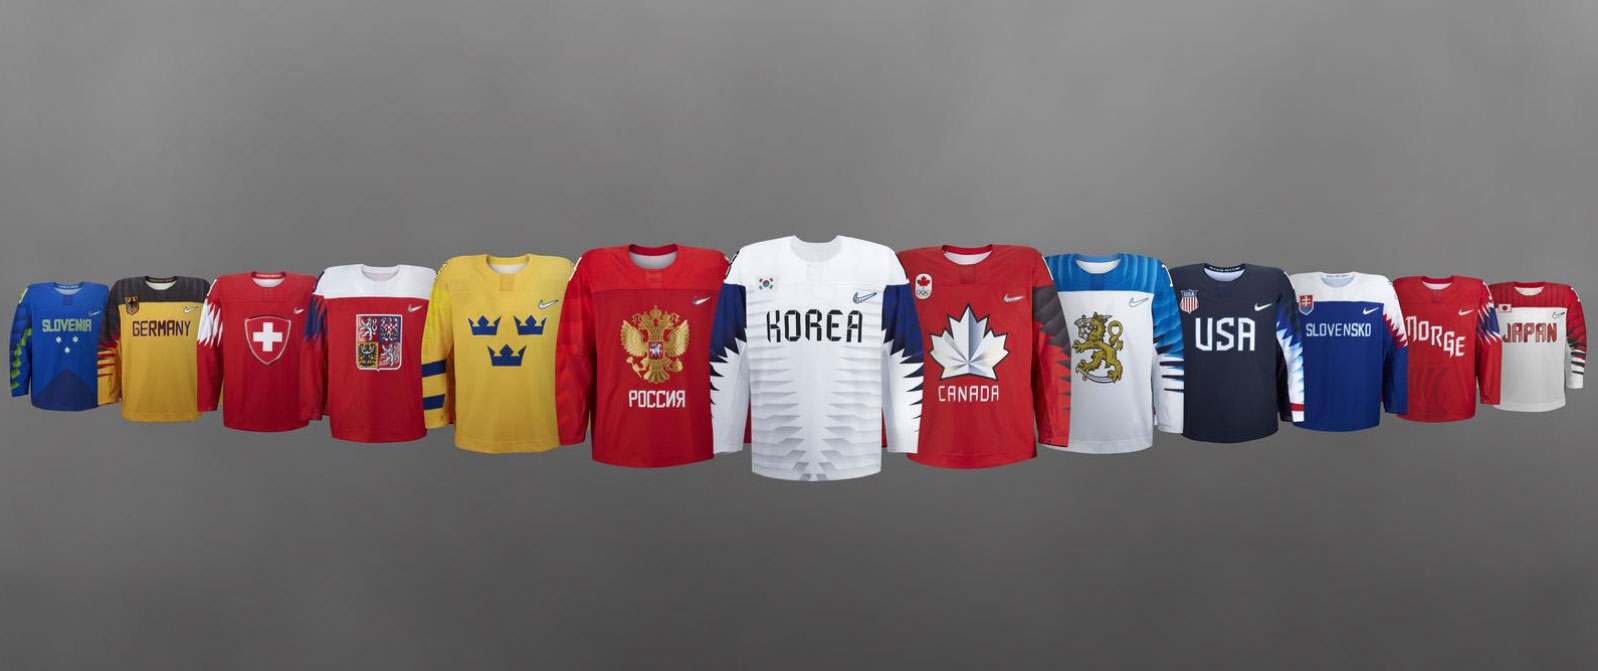 5bfe03522 As a sweater nerd, the Olympics always offer some new twists on old  favorites. Granted, the Nike designs are a bit much ...